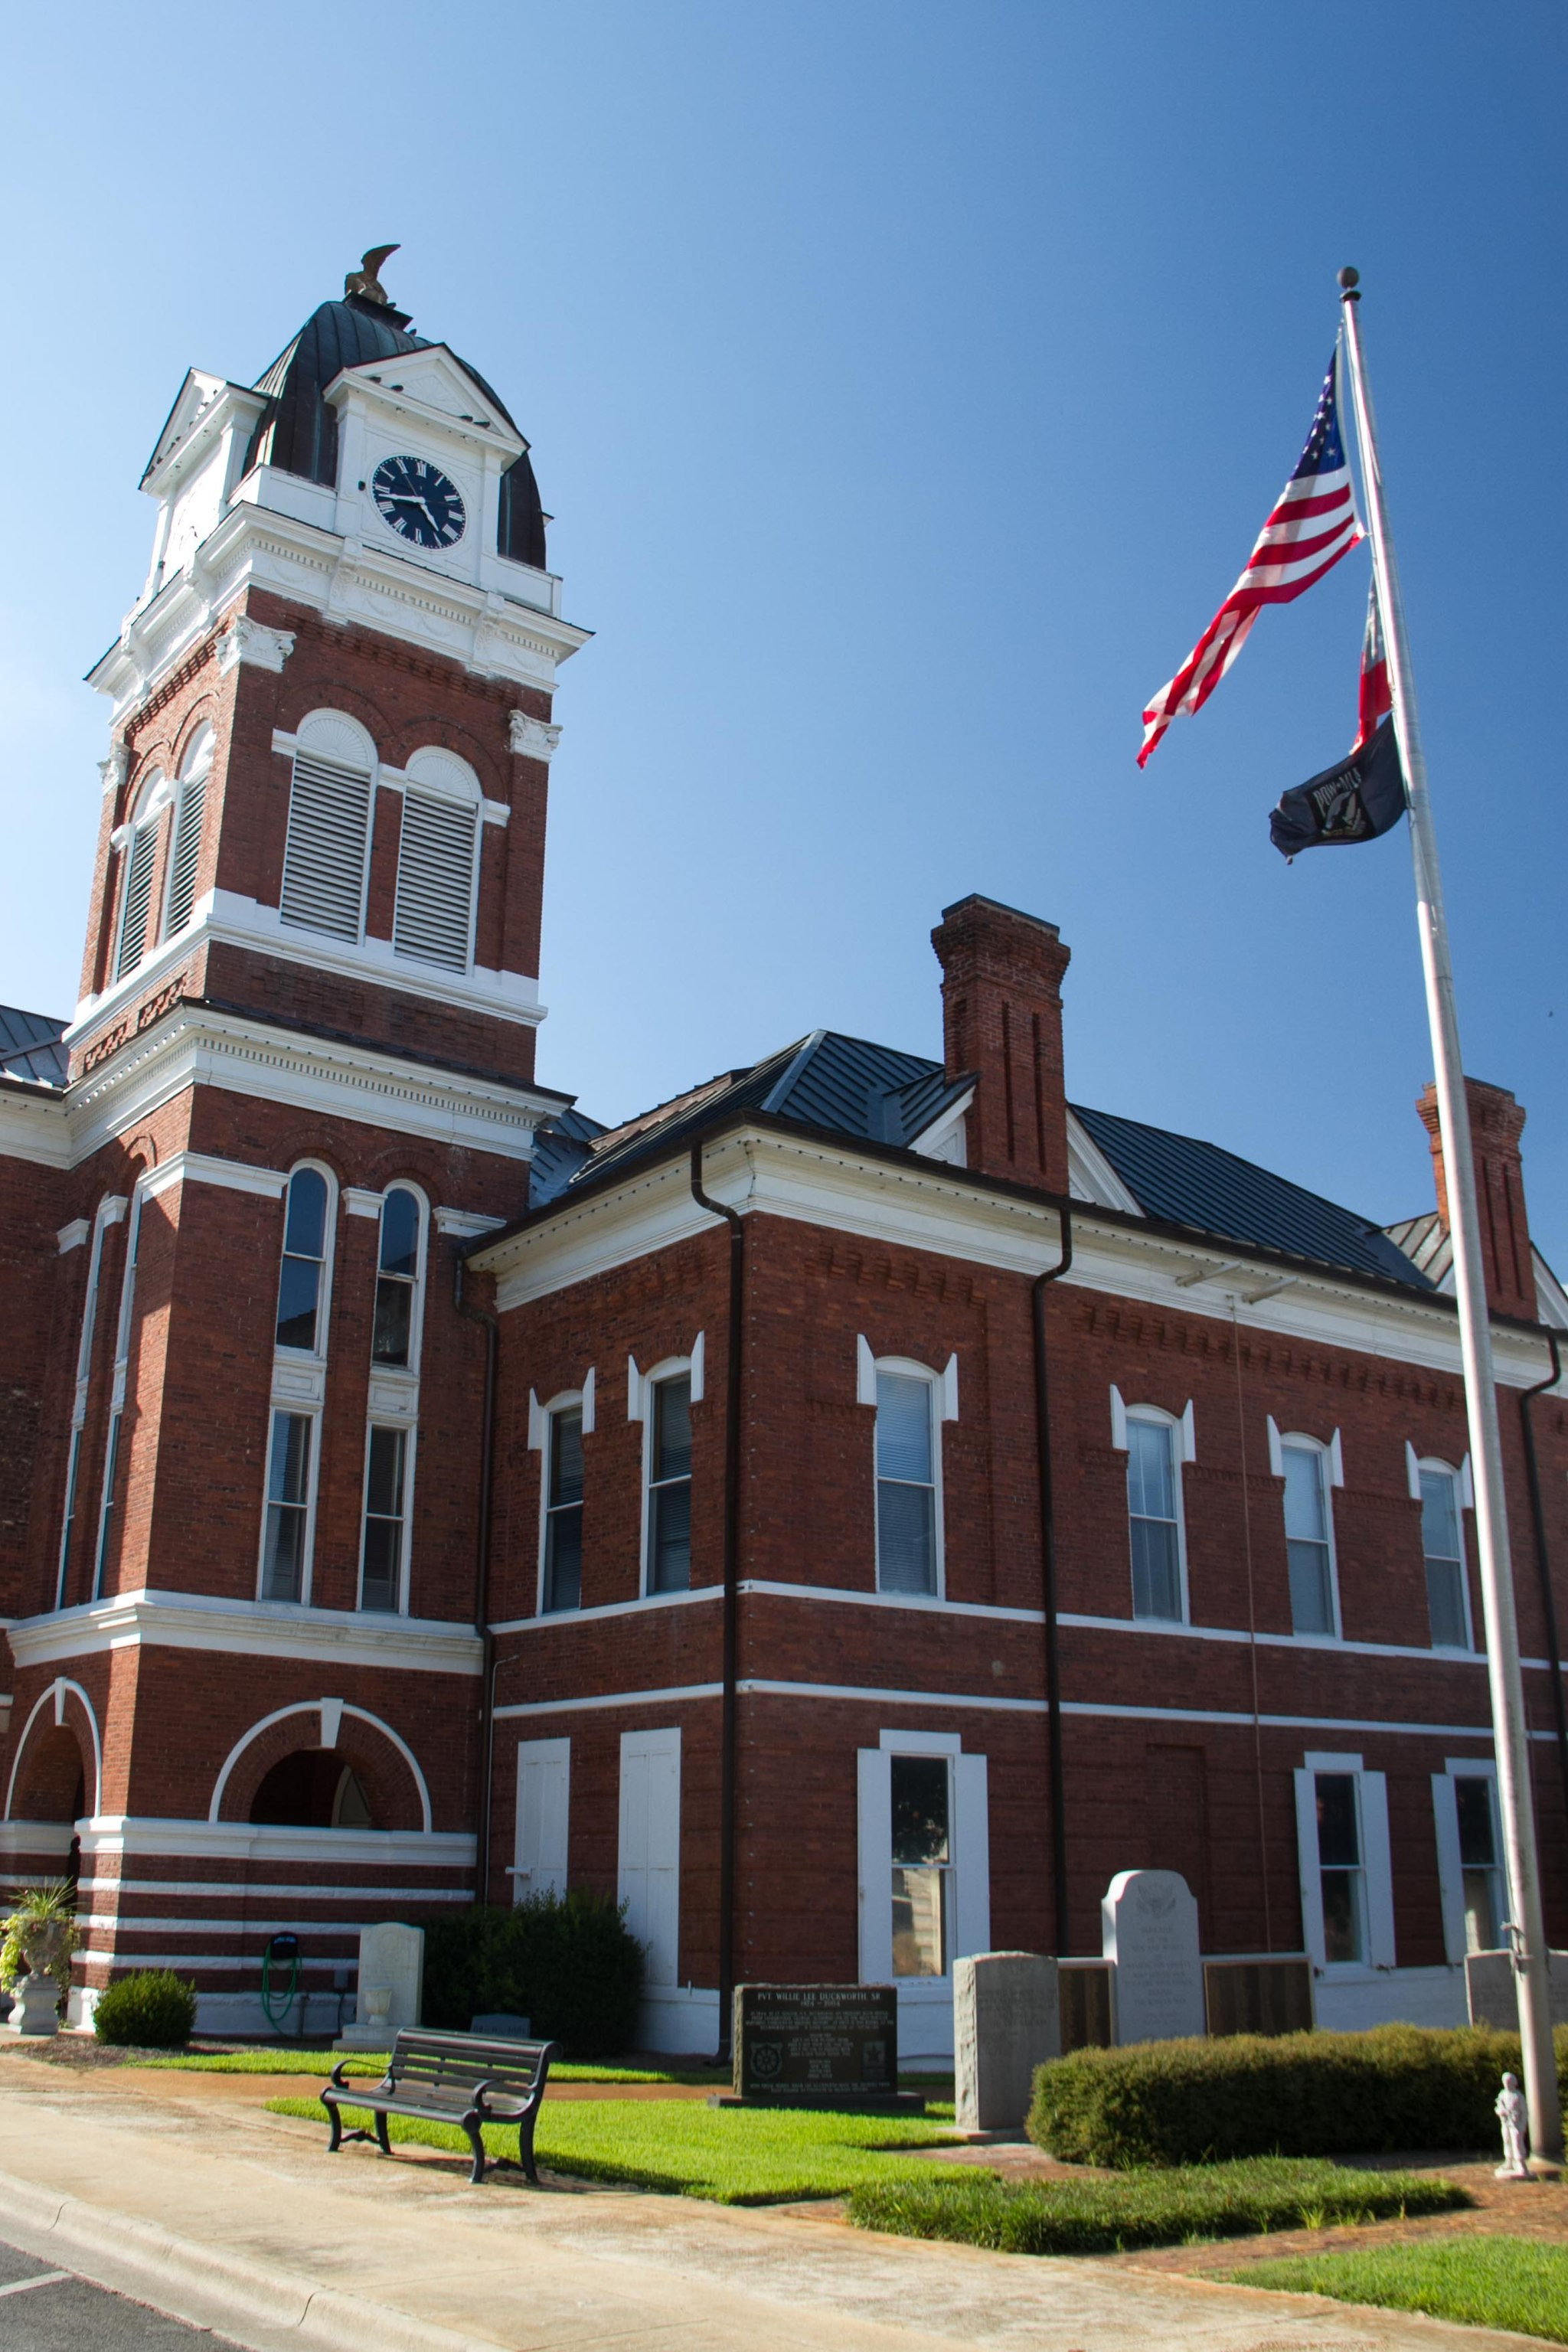 Courthouse in Sandersville